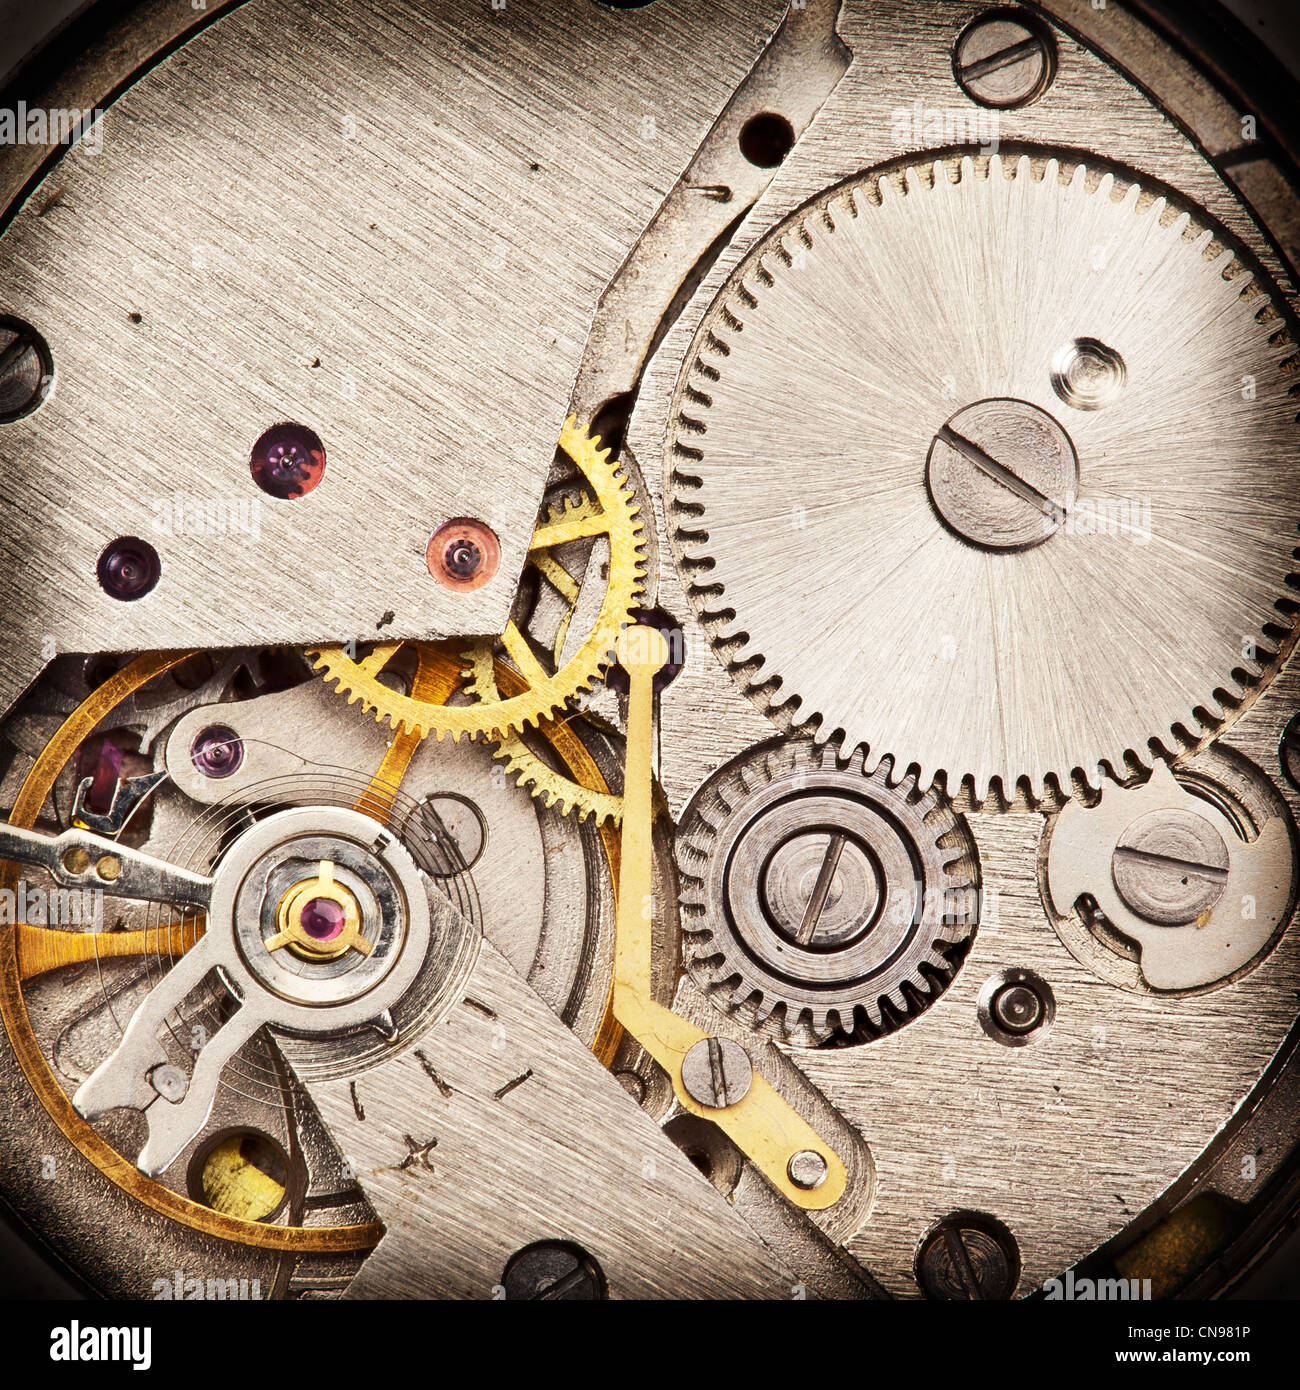 Mechanical clockwork. Close up shot. - Stock Image